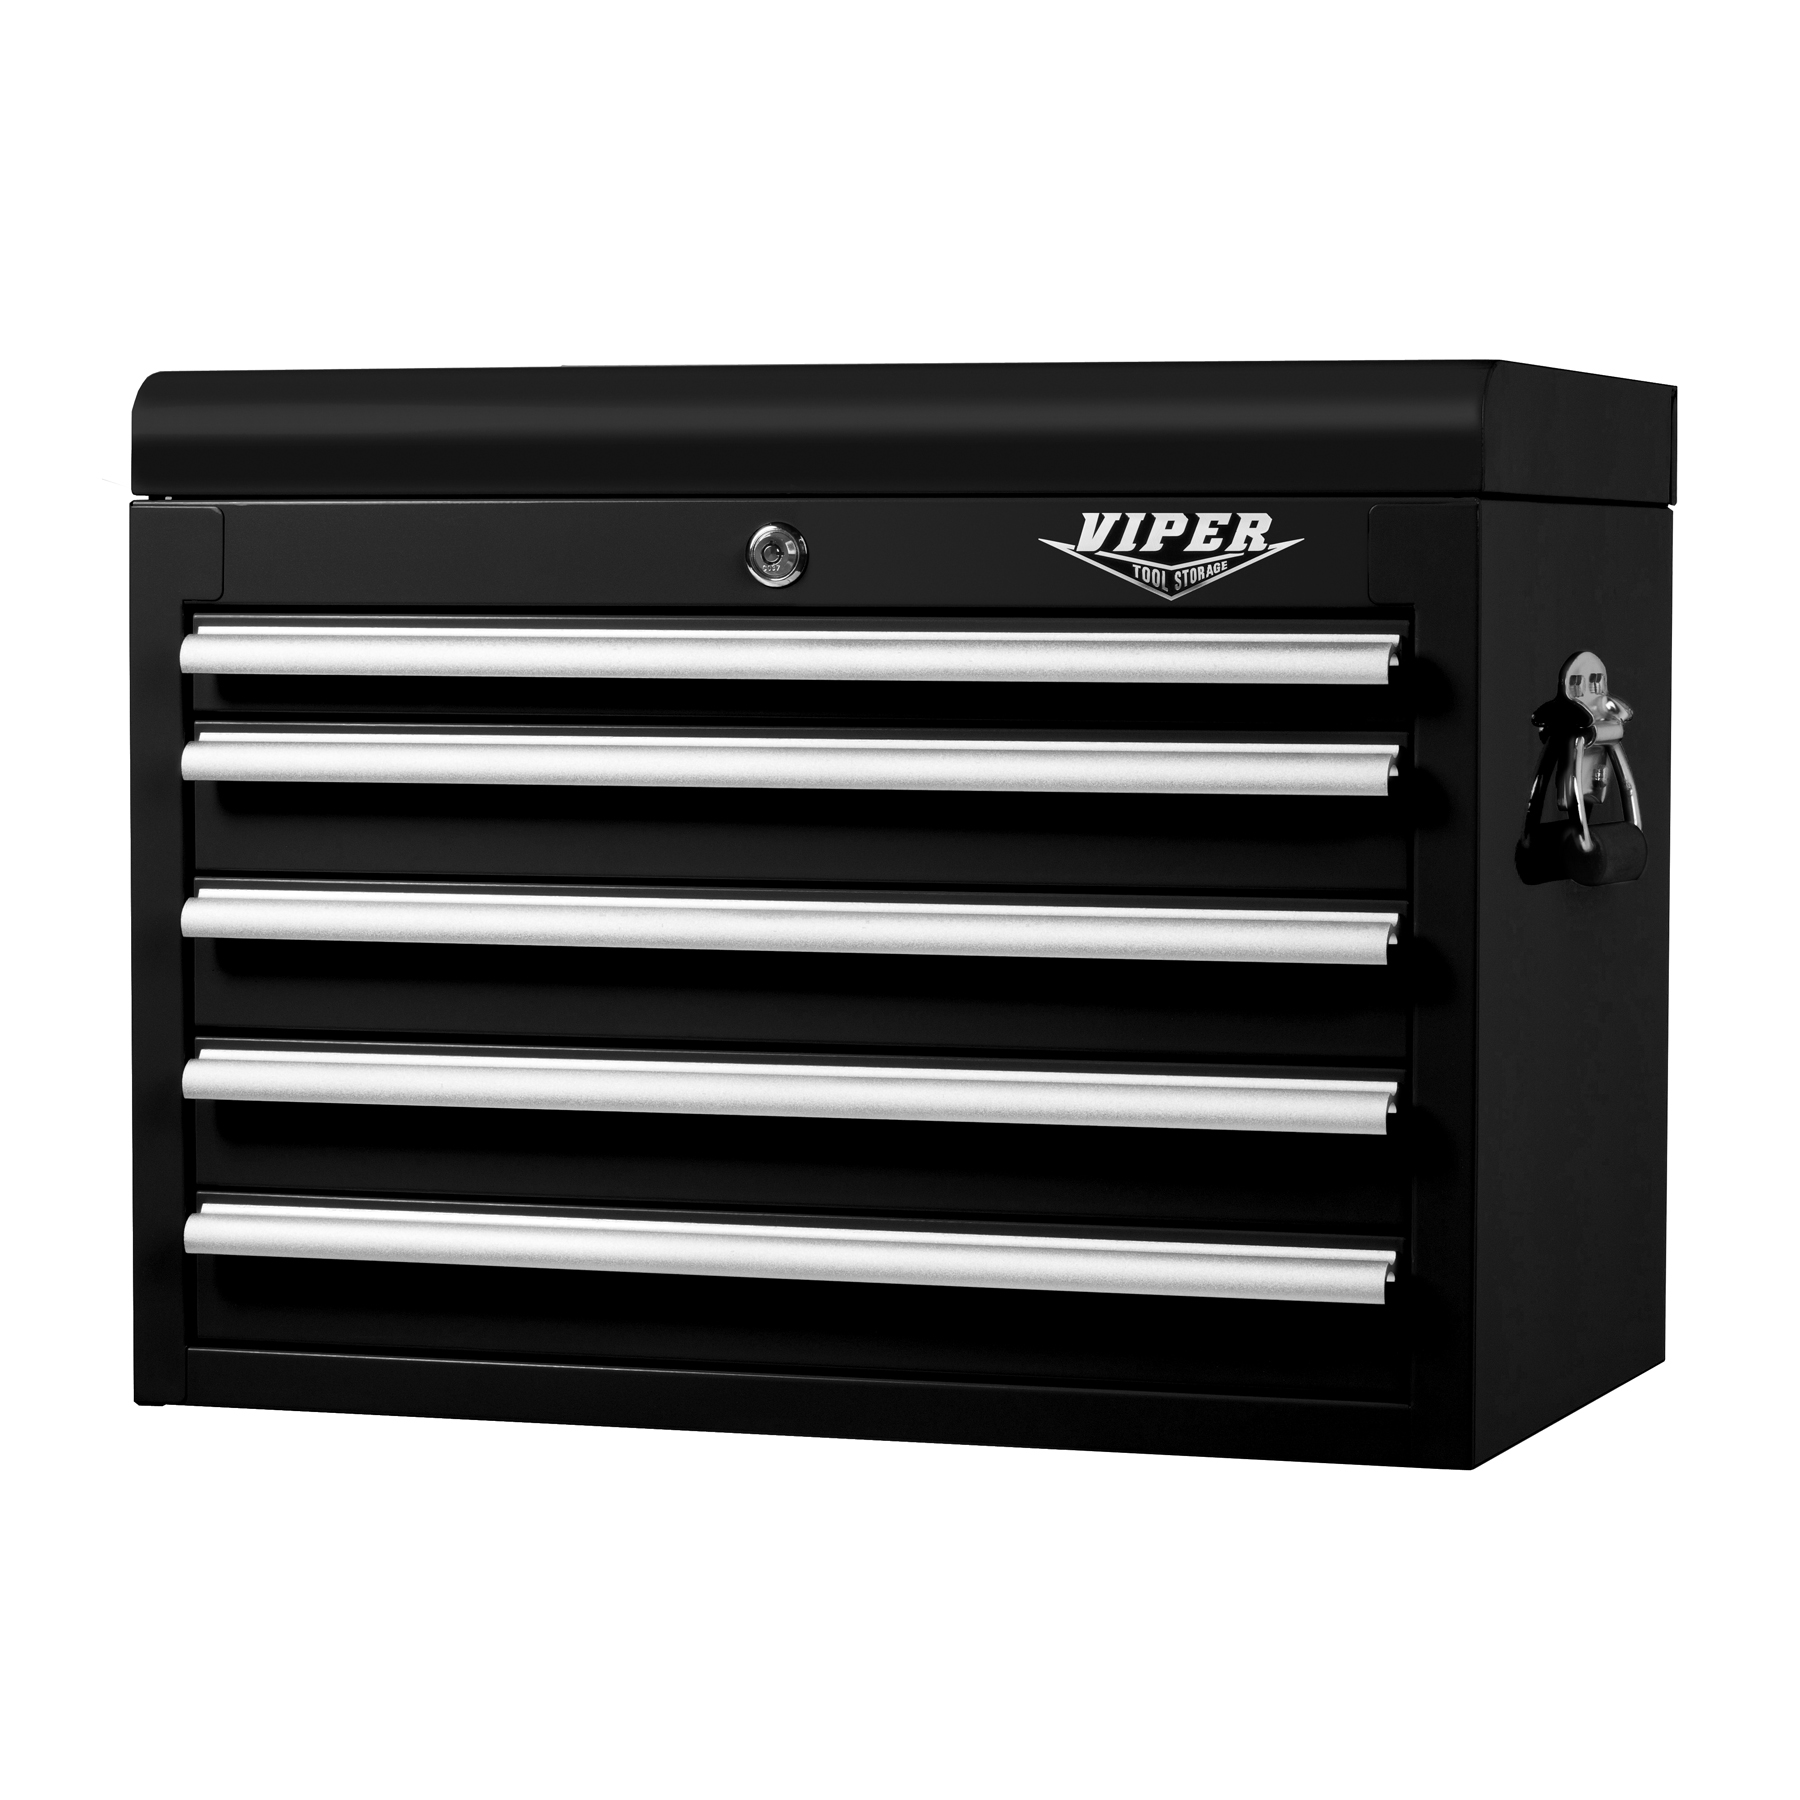 "Viper Tool Storage 26"" 5 Drawer 18G Steel Top Chest, Black"